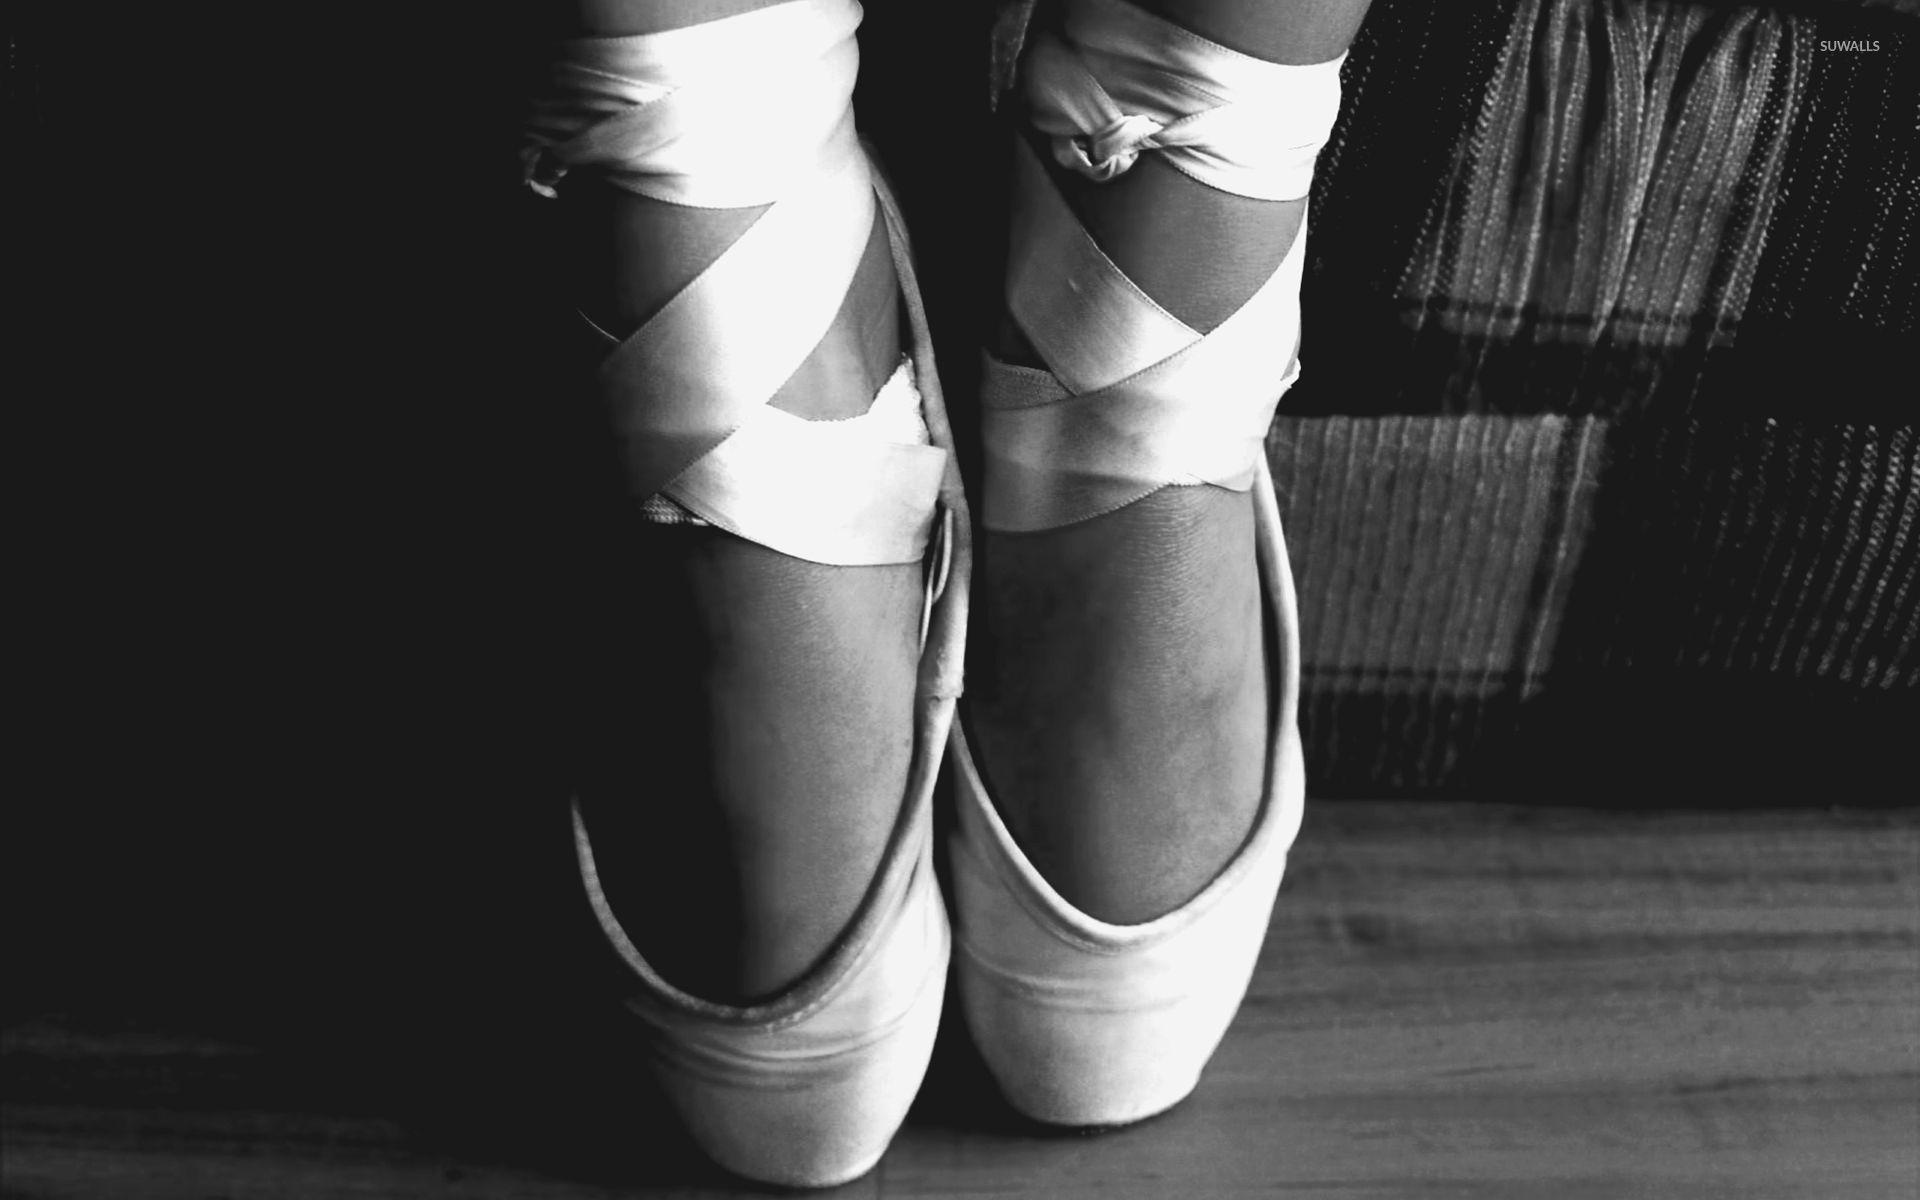 Ballet Shoes Wallpapers - Wallpaper Cave